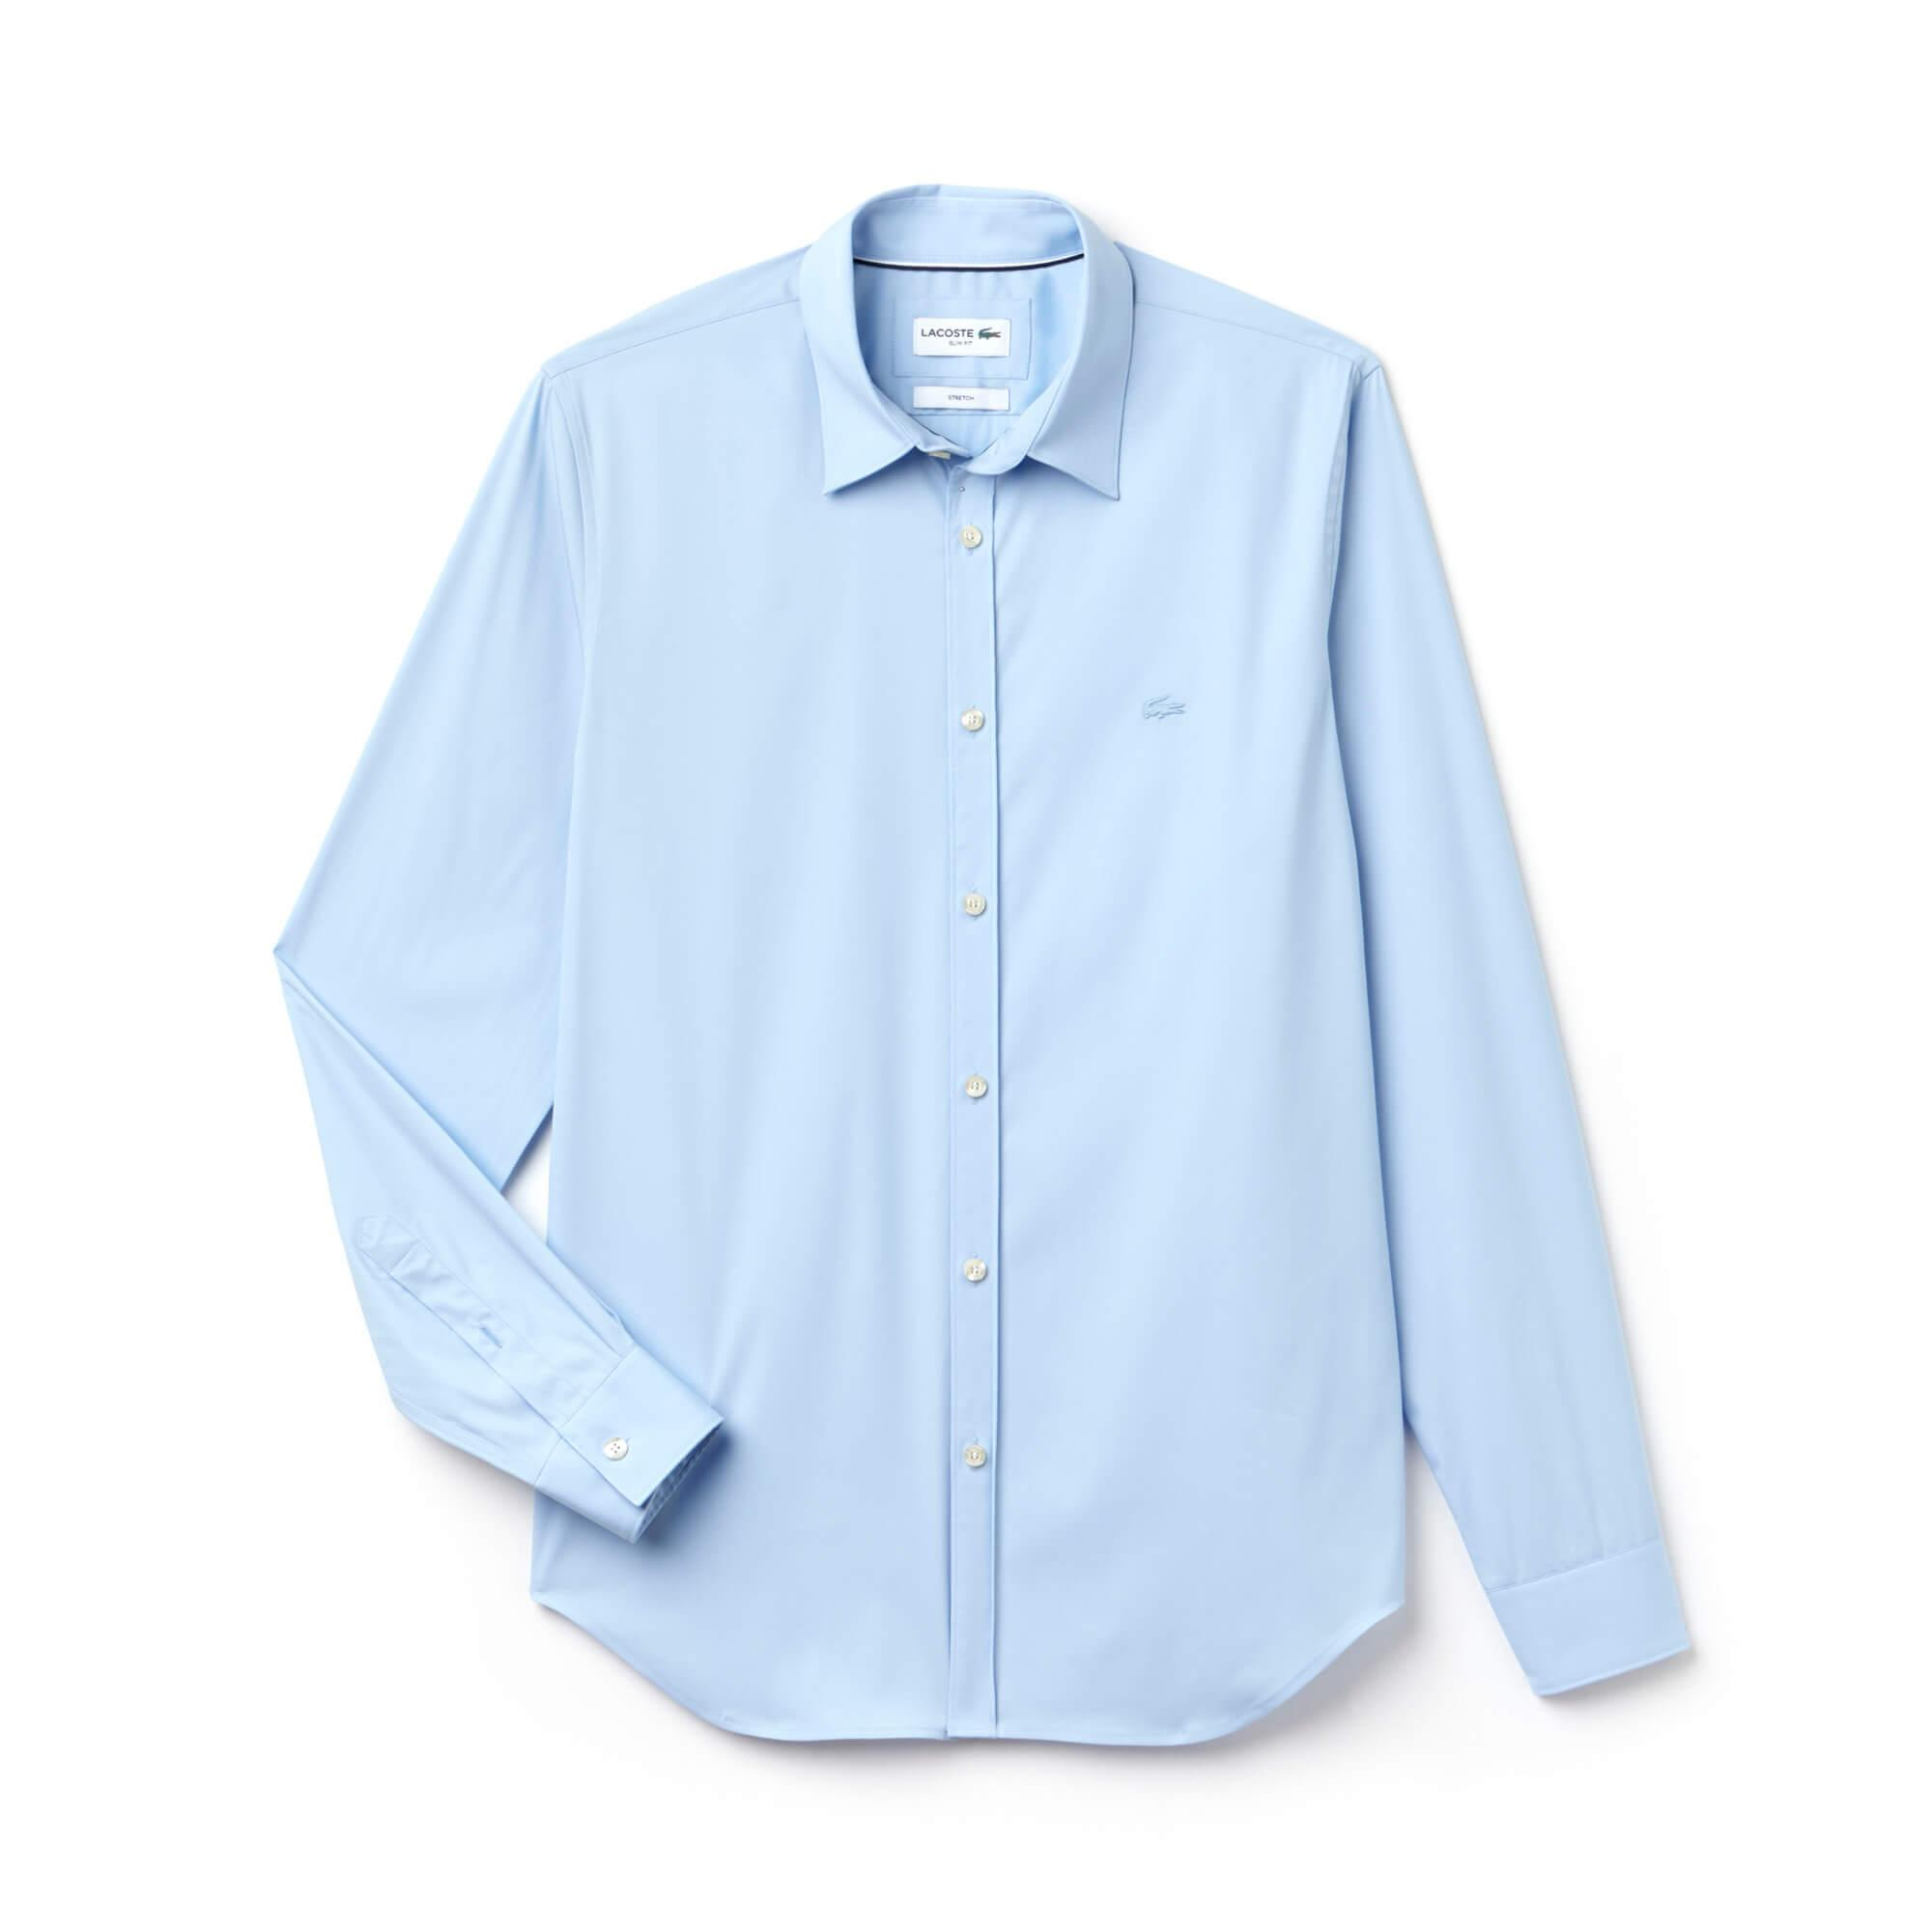 Lacoste Men's Long Sleeve Wovens Shirts